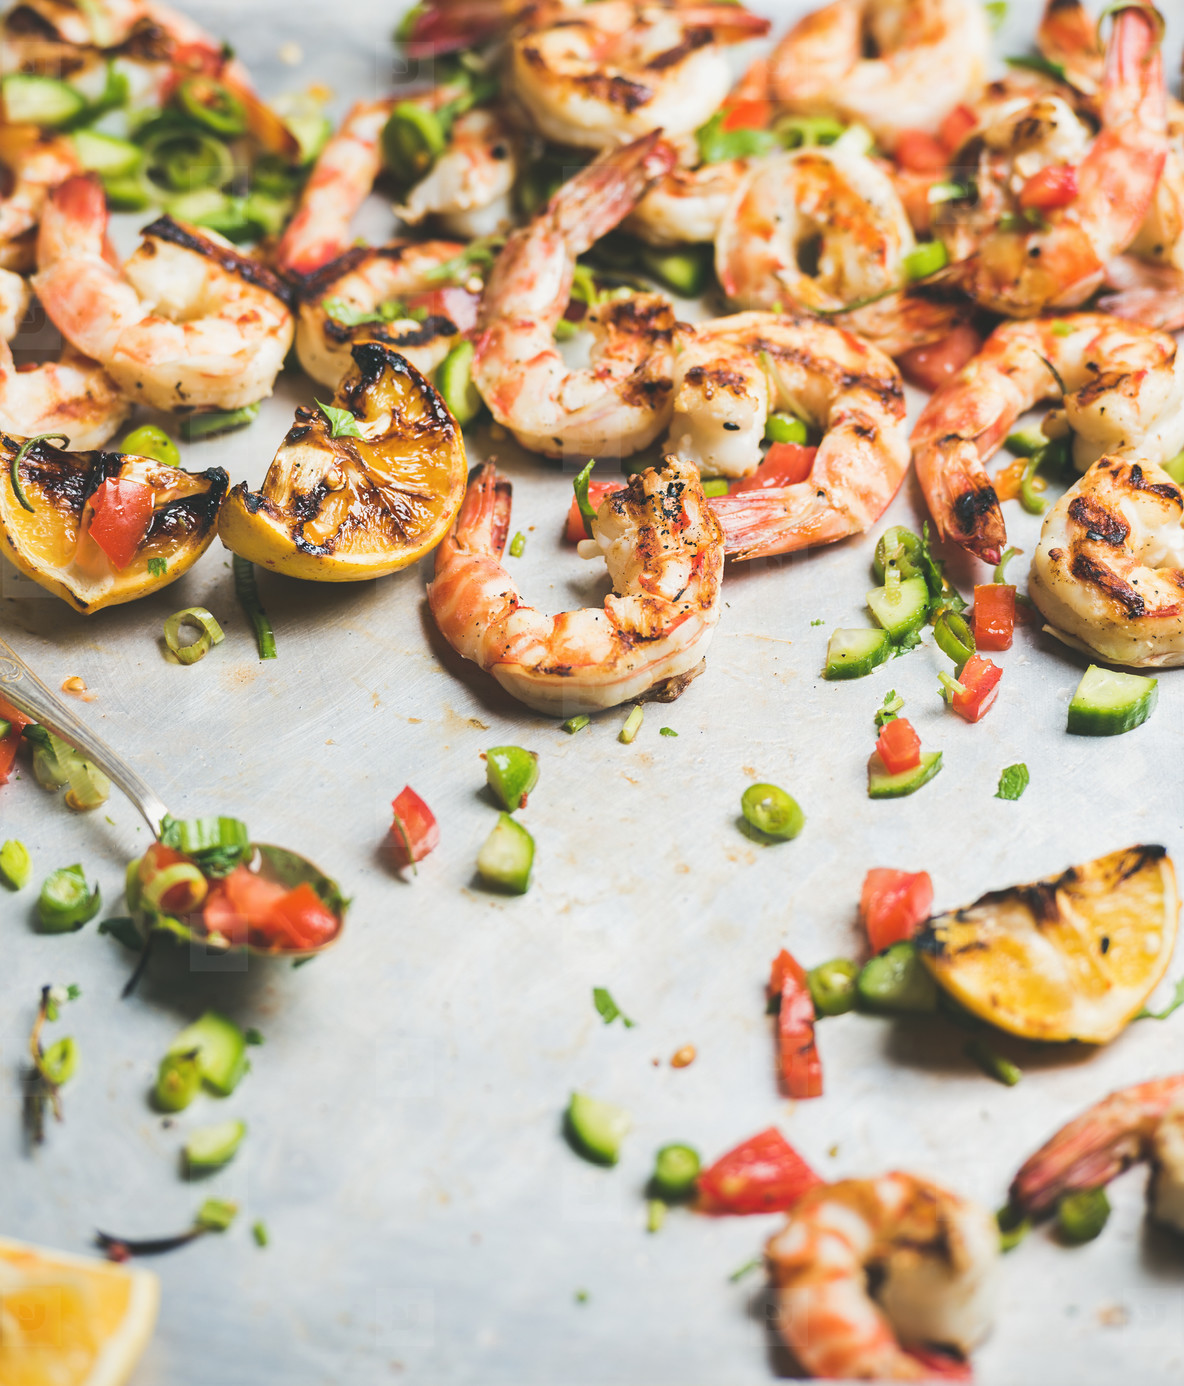 Grilled tiger prawns with lemon and mint salsa in tray